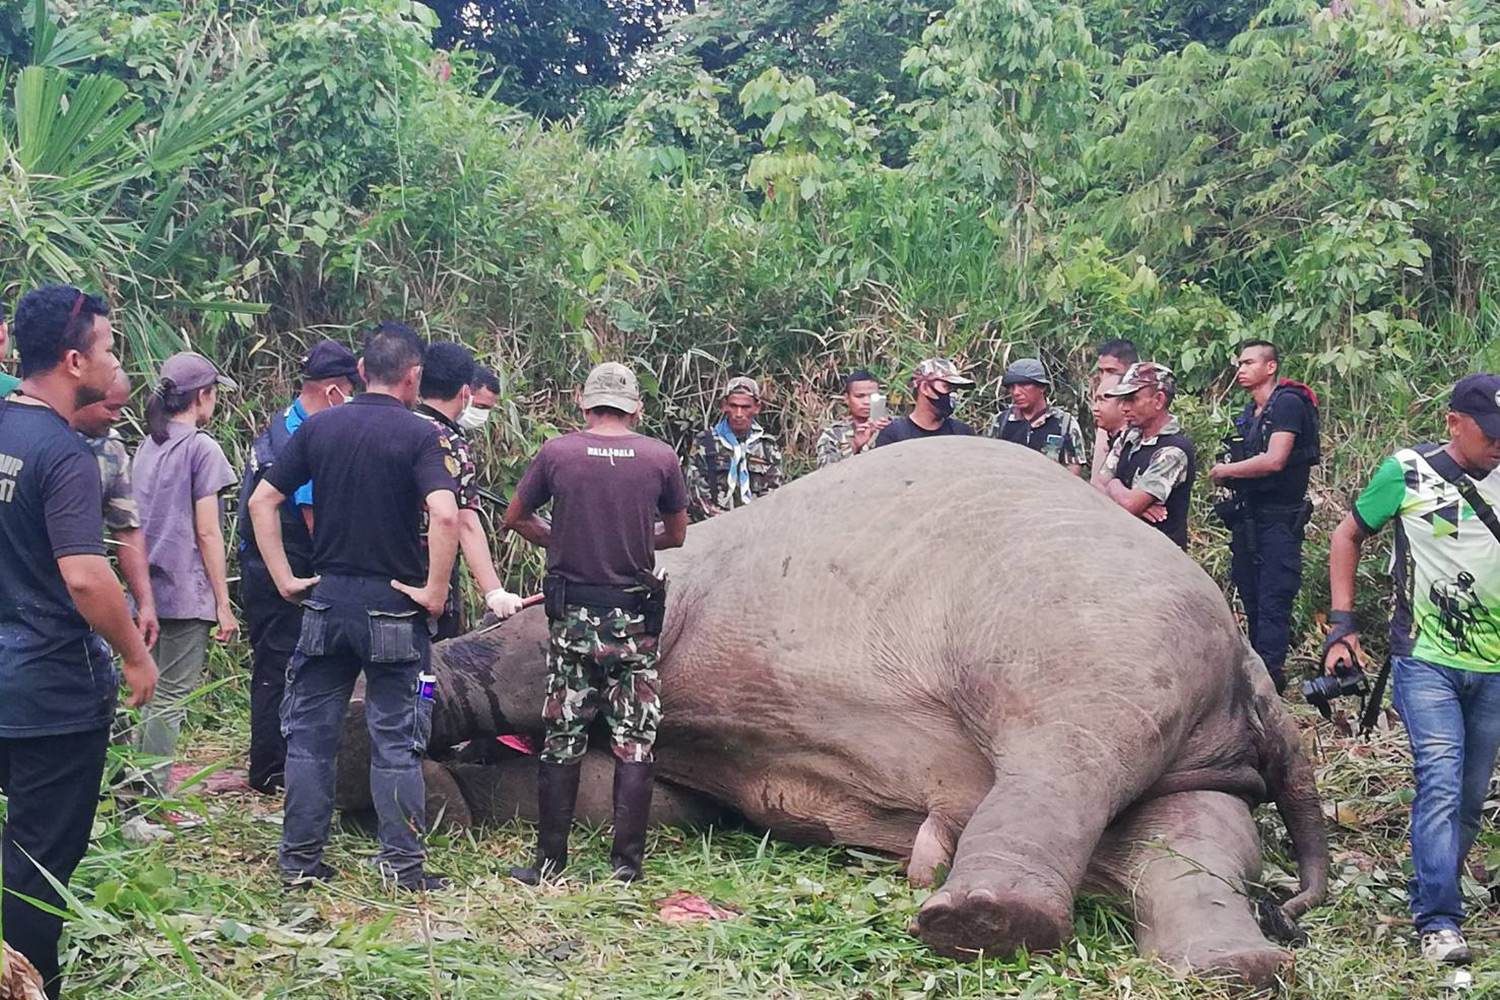 A wild elephant is found dead with tusks removed in a forest area near a rubber plantation in Rangae district, Narathiwat, on Saturday. (Photo by Waedao Harai)